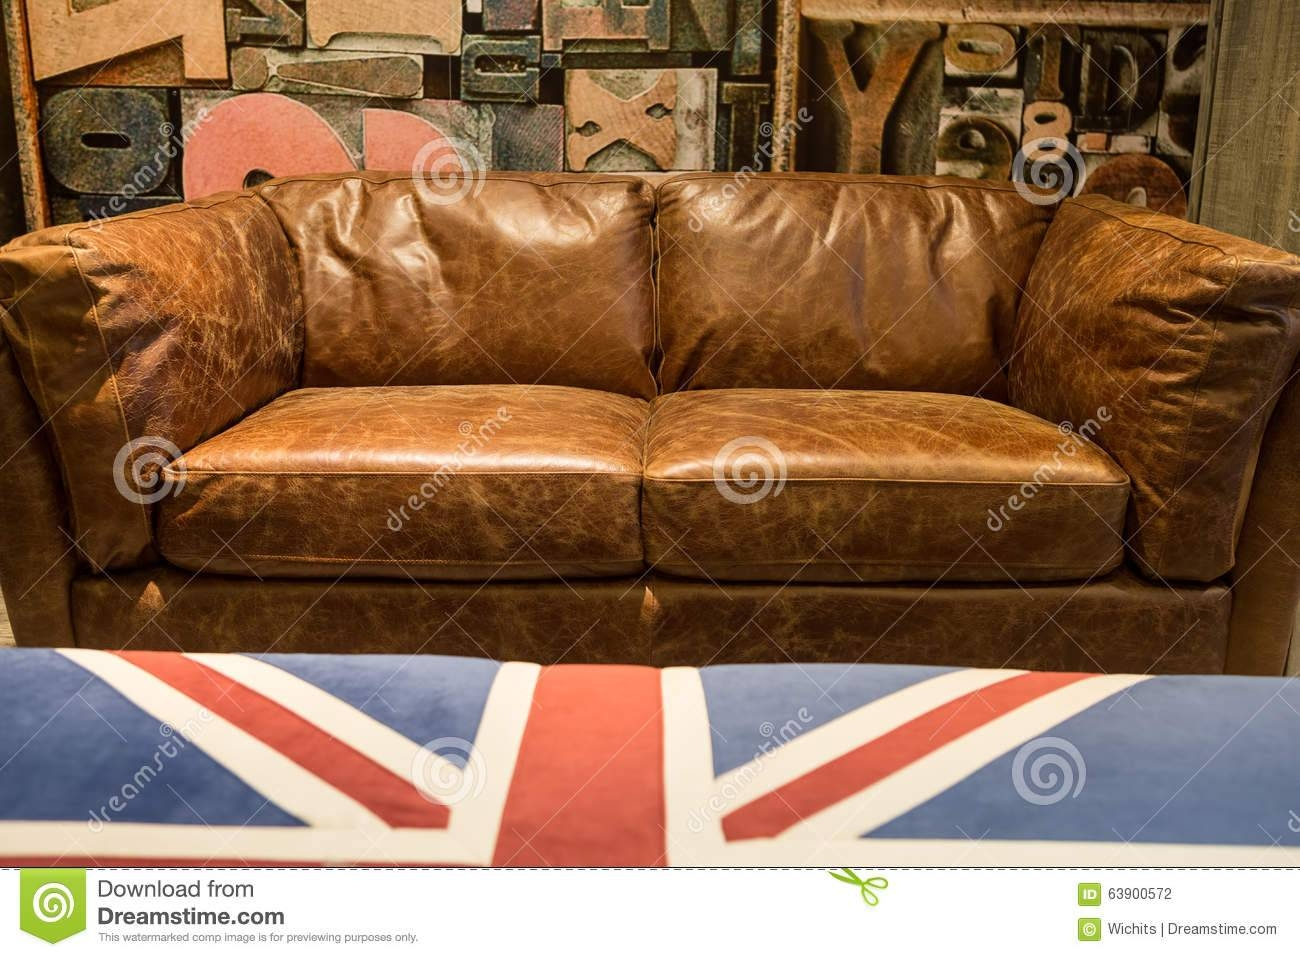 Vintage Brown Leather Sofa Stock Photo - Image: 63900572 throughout Vintage Leather Sofa Beds (Image 20 of 30)